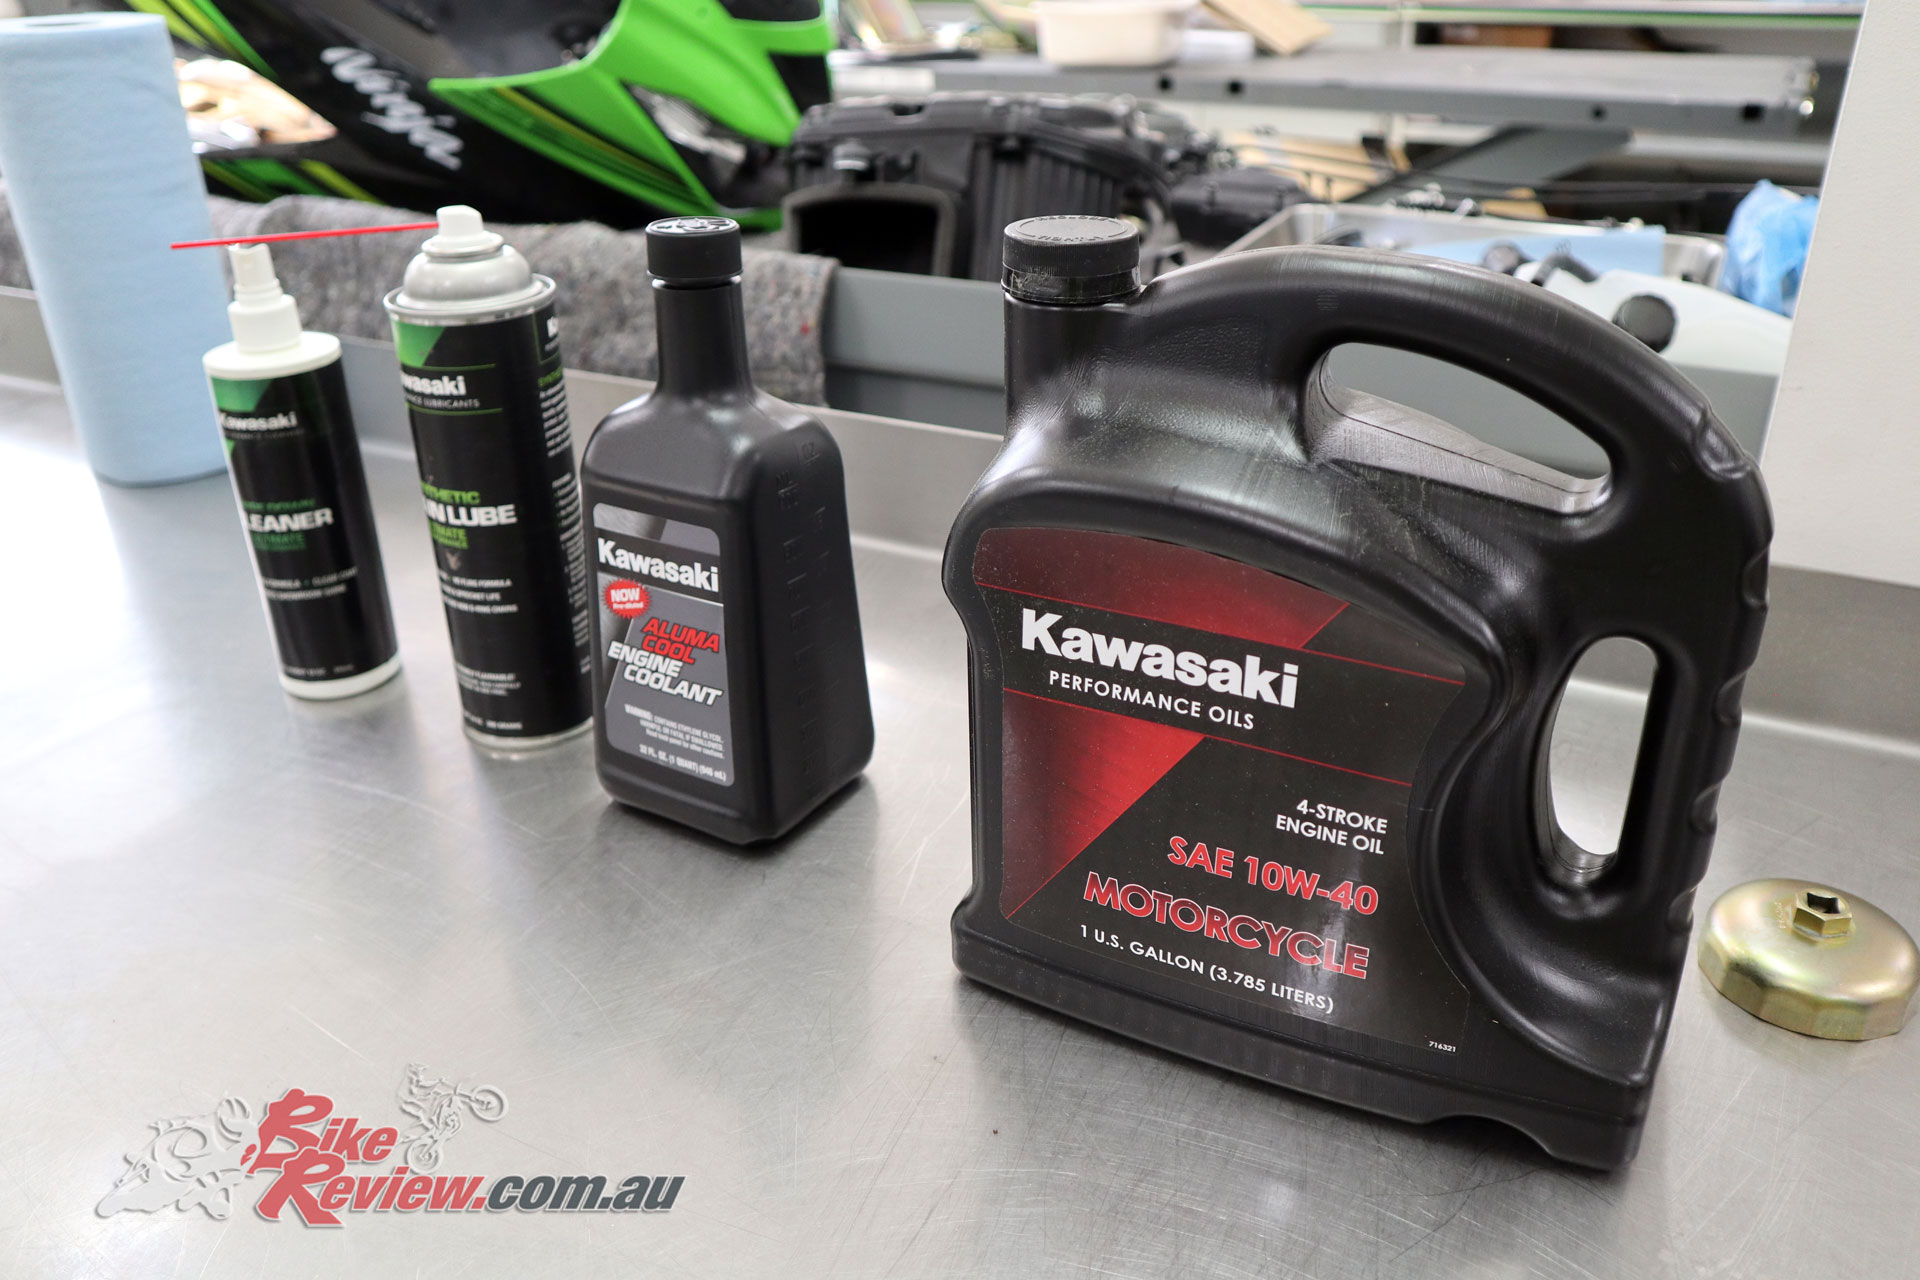 All the Kawasaki servicing consumables ready